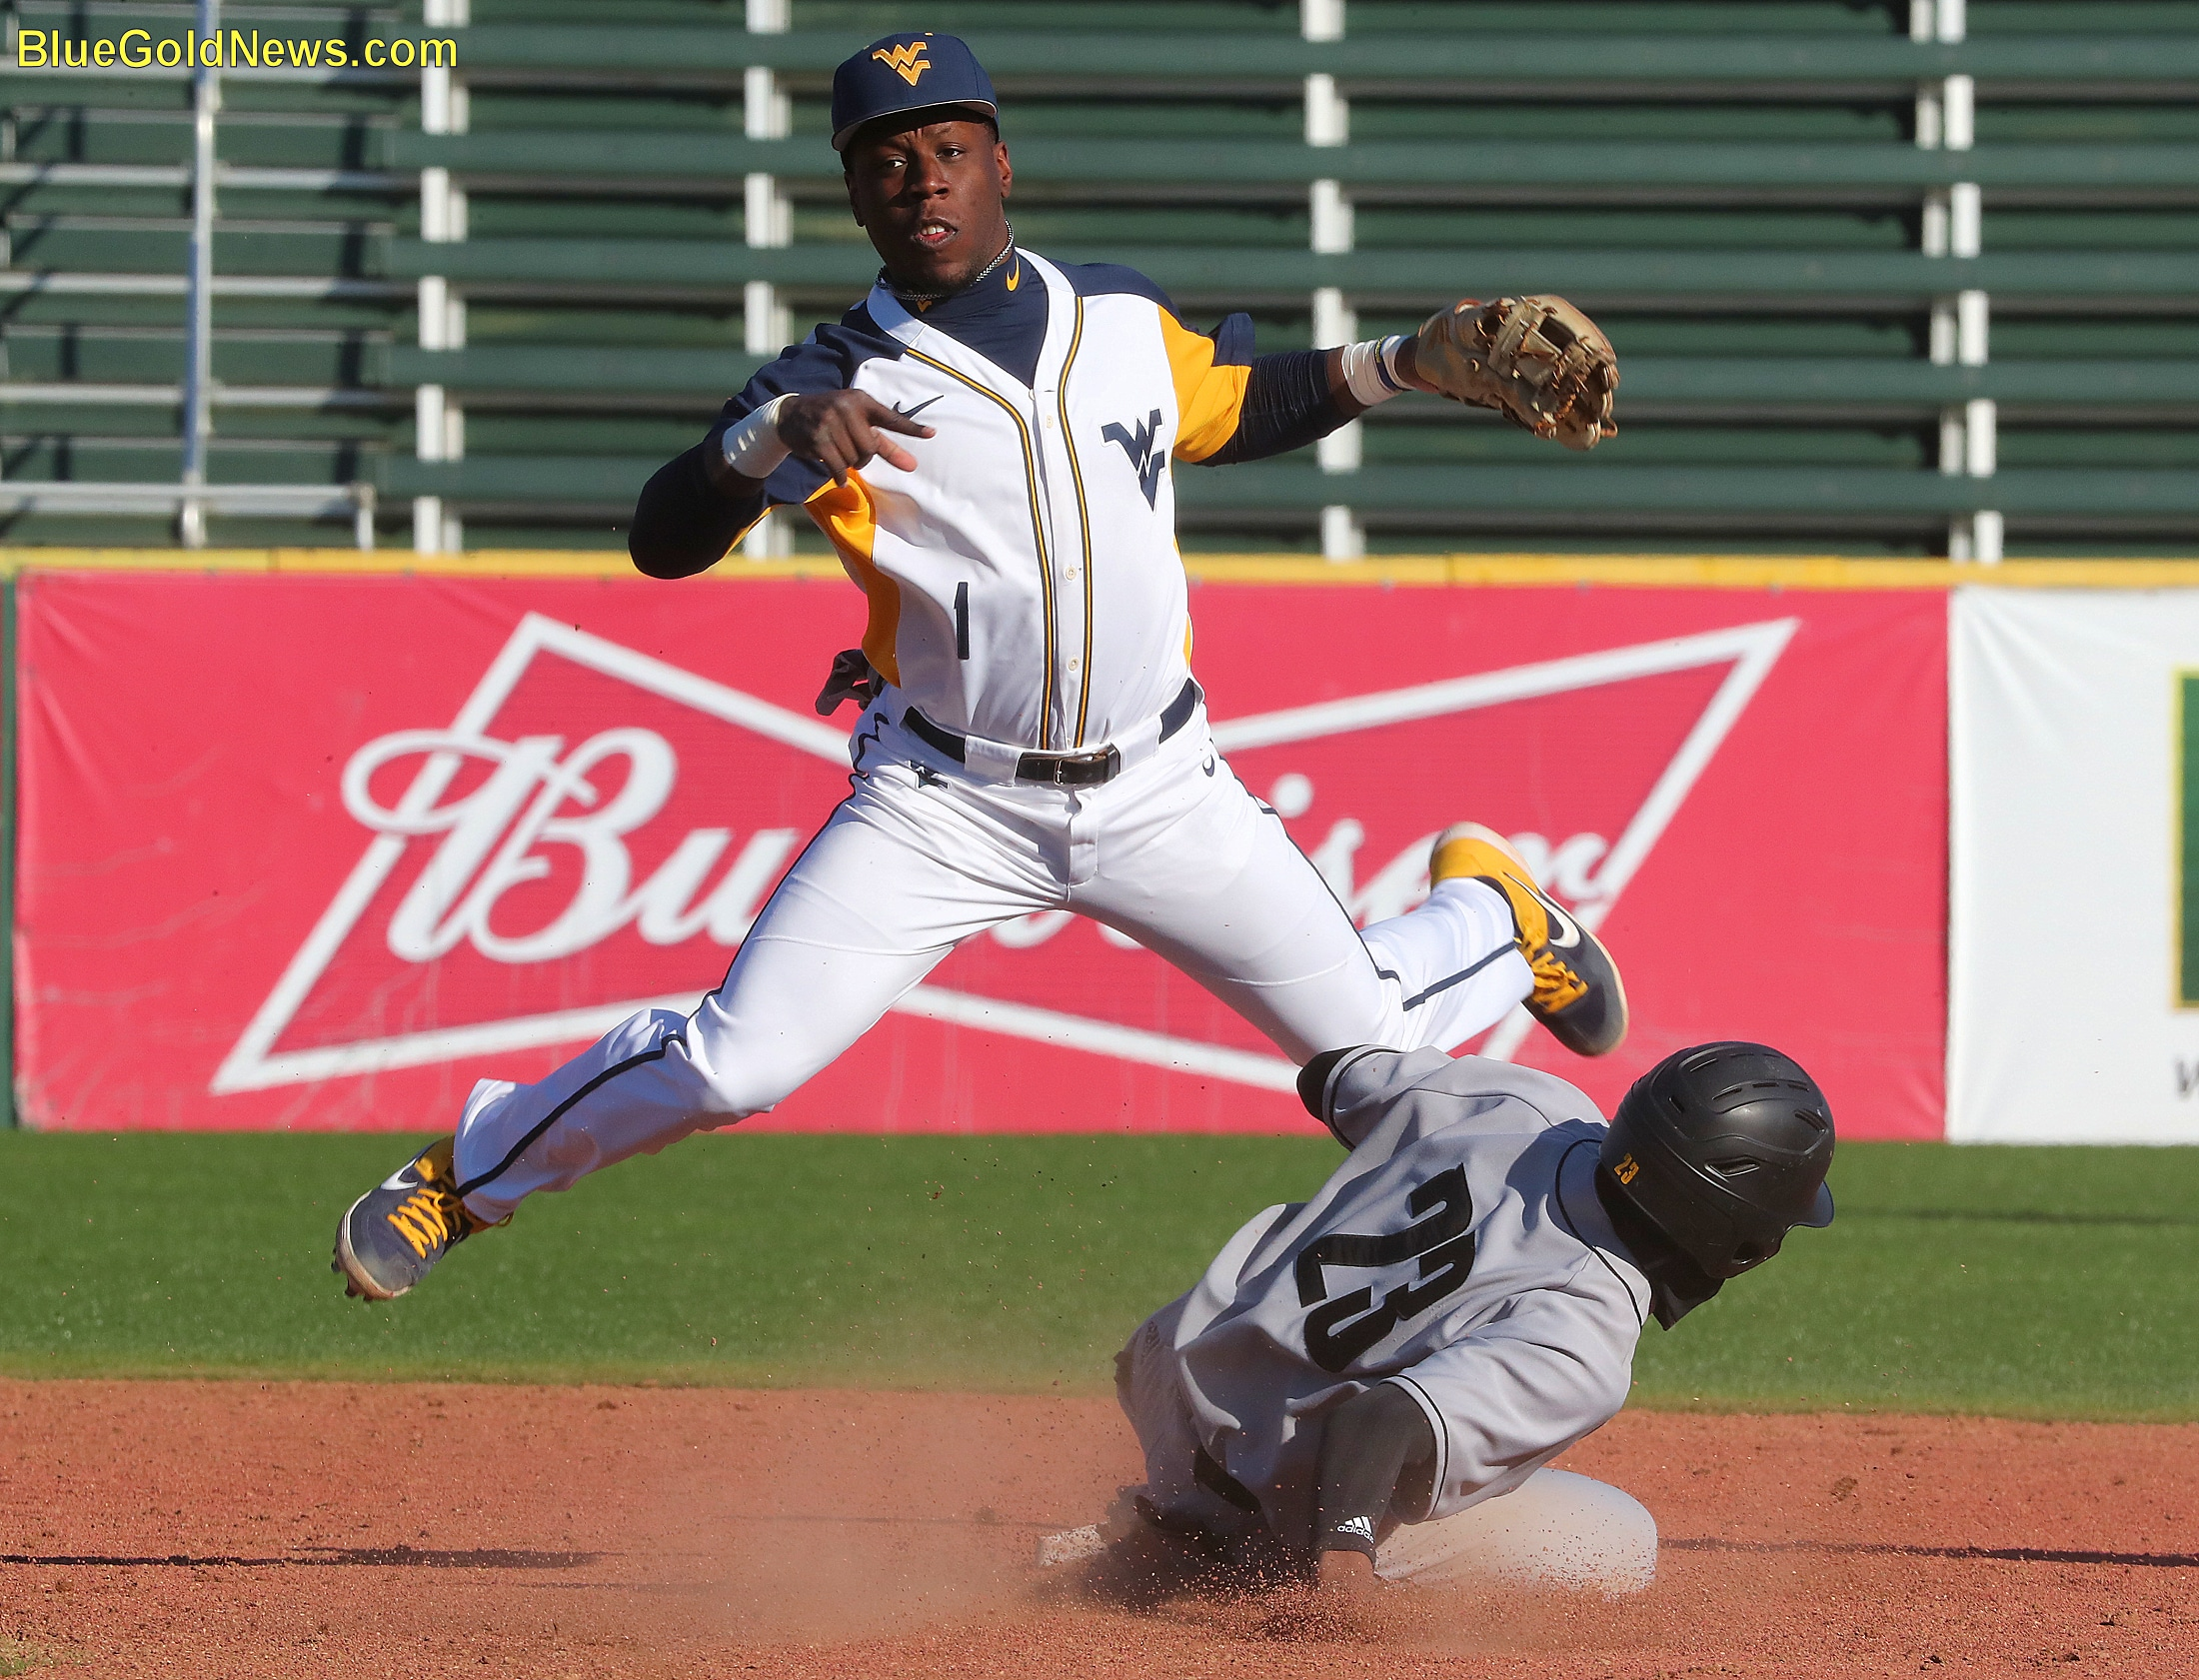 West Virginia infielder Tyler Doanes (1) avoids the slide of Kennesaw State's Nick Hassan (23) to complete a double play